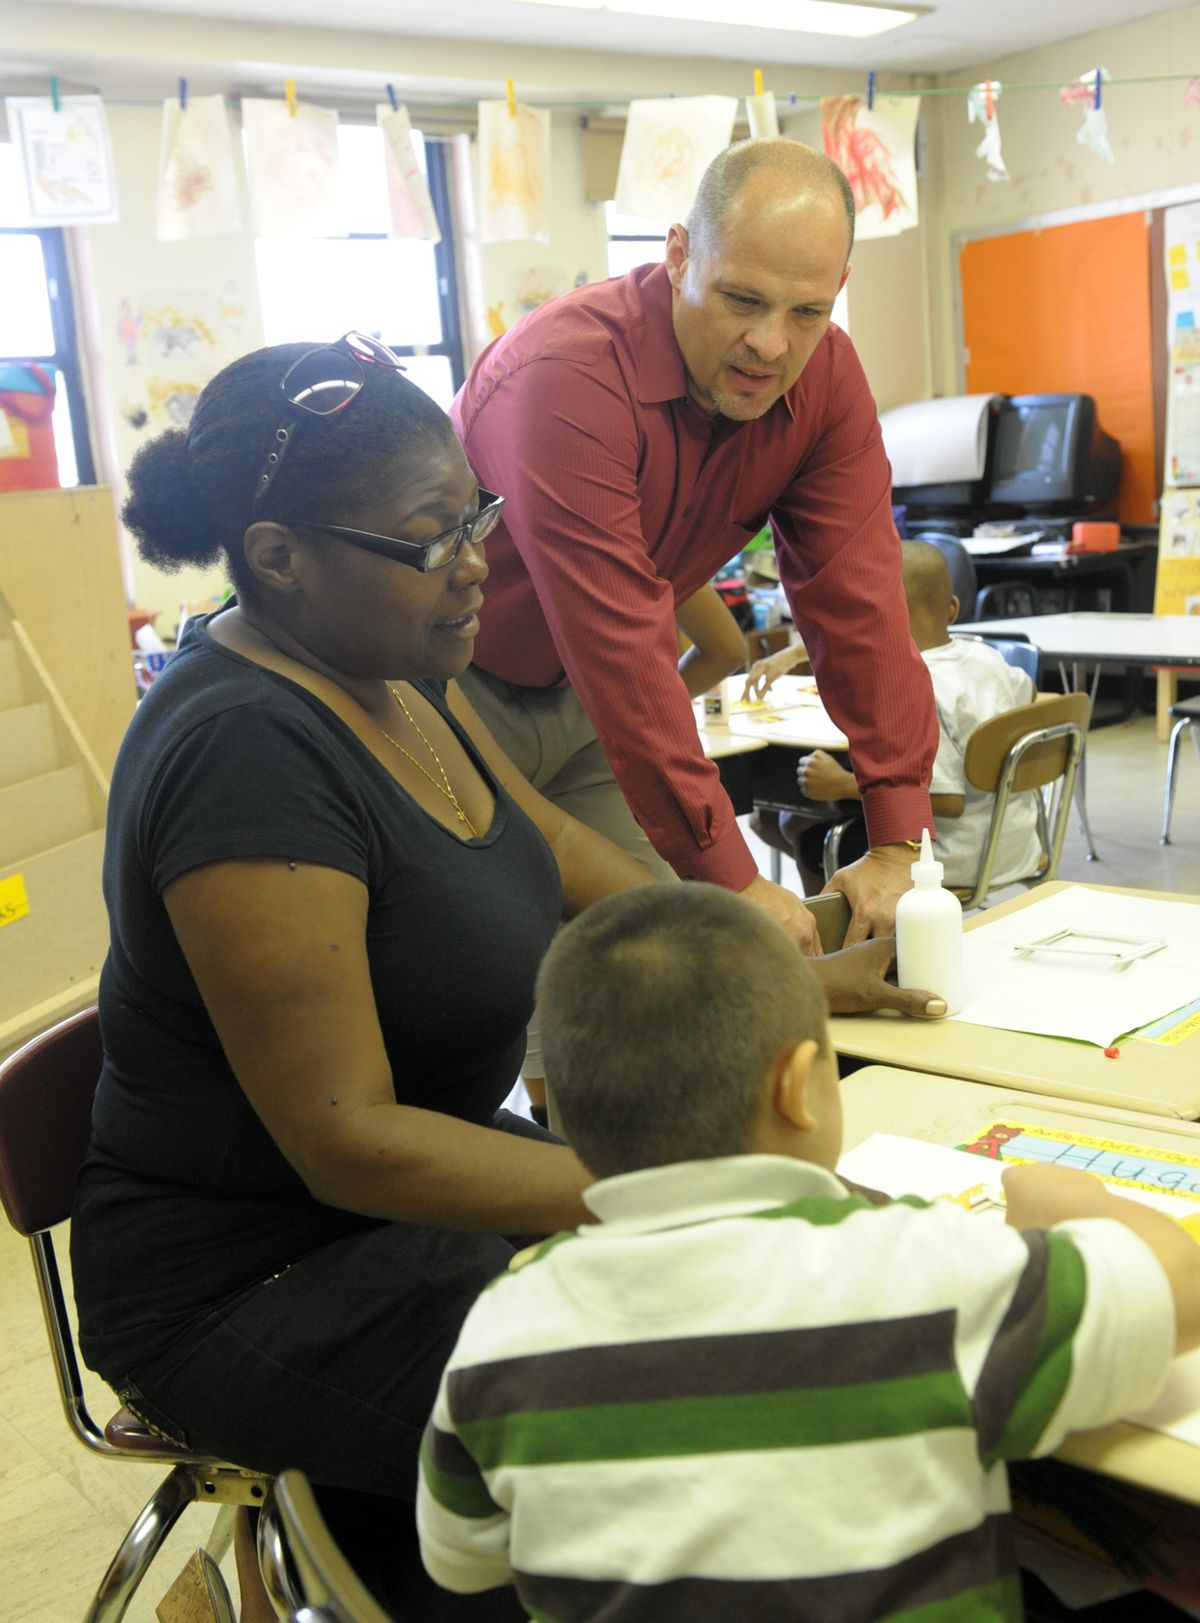 On his first day of work, Mulgrew visited teacher Carla Greene at P.S. 329 in Brooklyn. (Courtesy of Miller Photography/UFT)